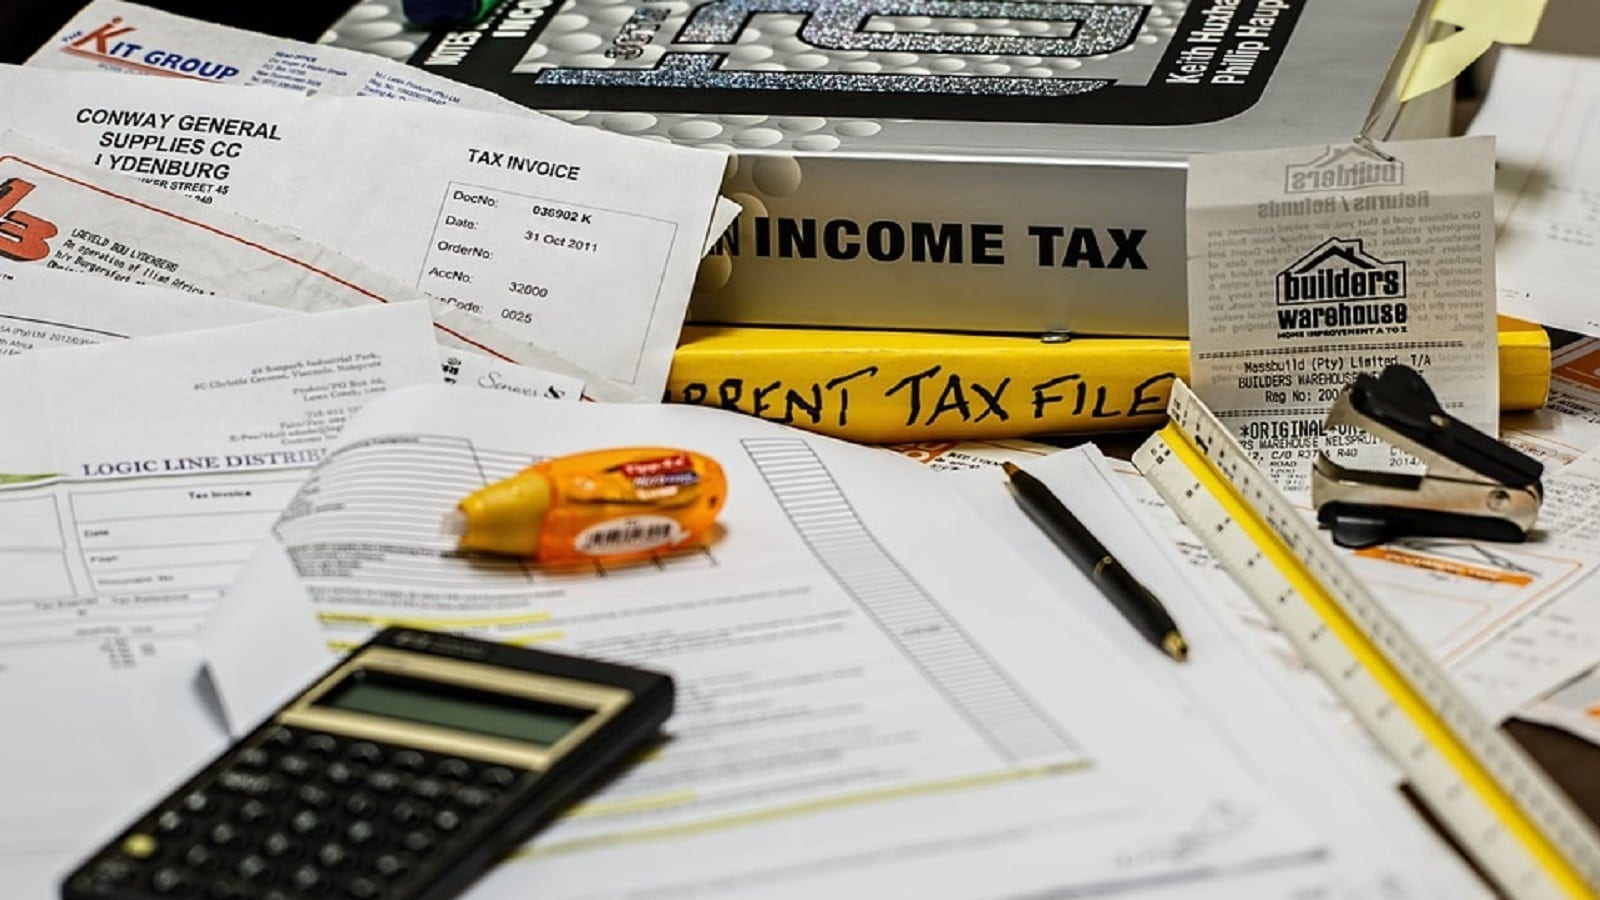 Income Tax Documents Stock Photo